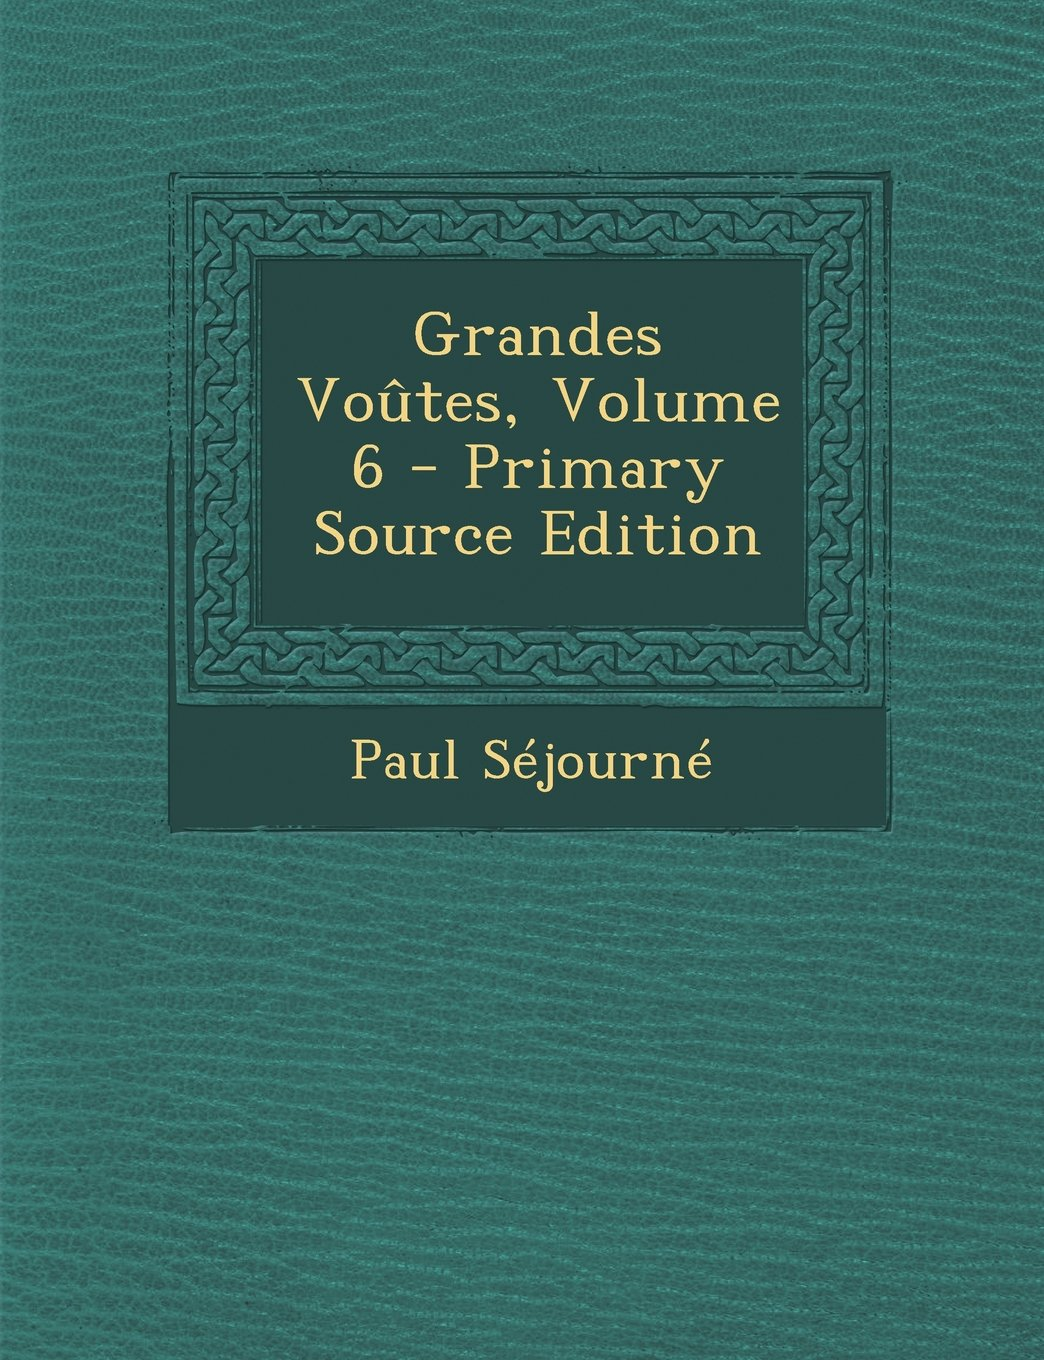 Grandes Voutes, Volume 6 - Primary Source Edition (French Edition) ebook